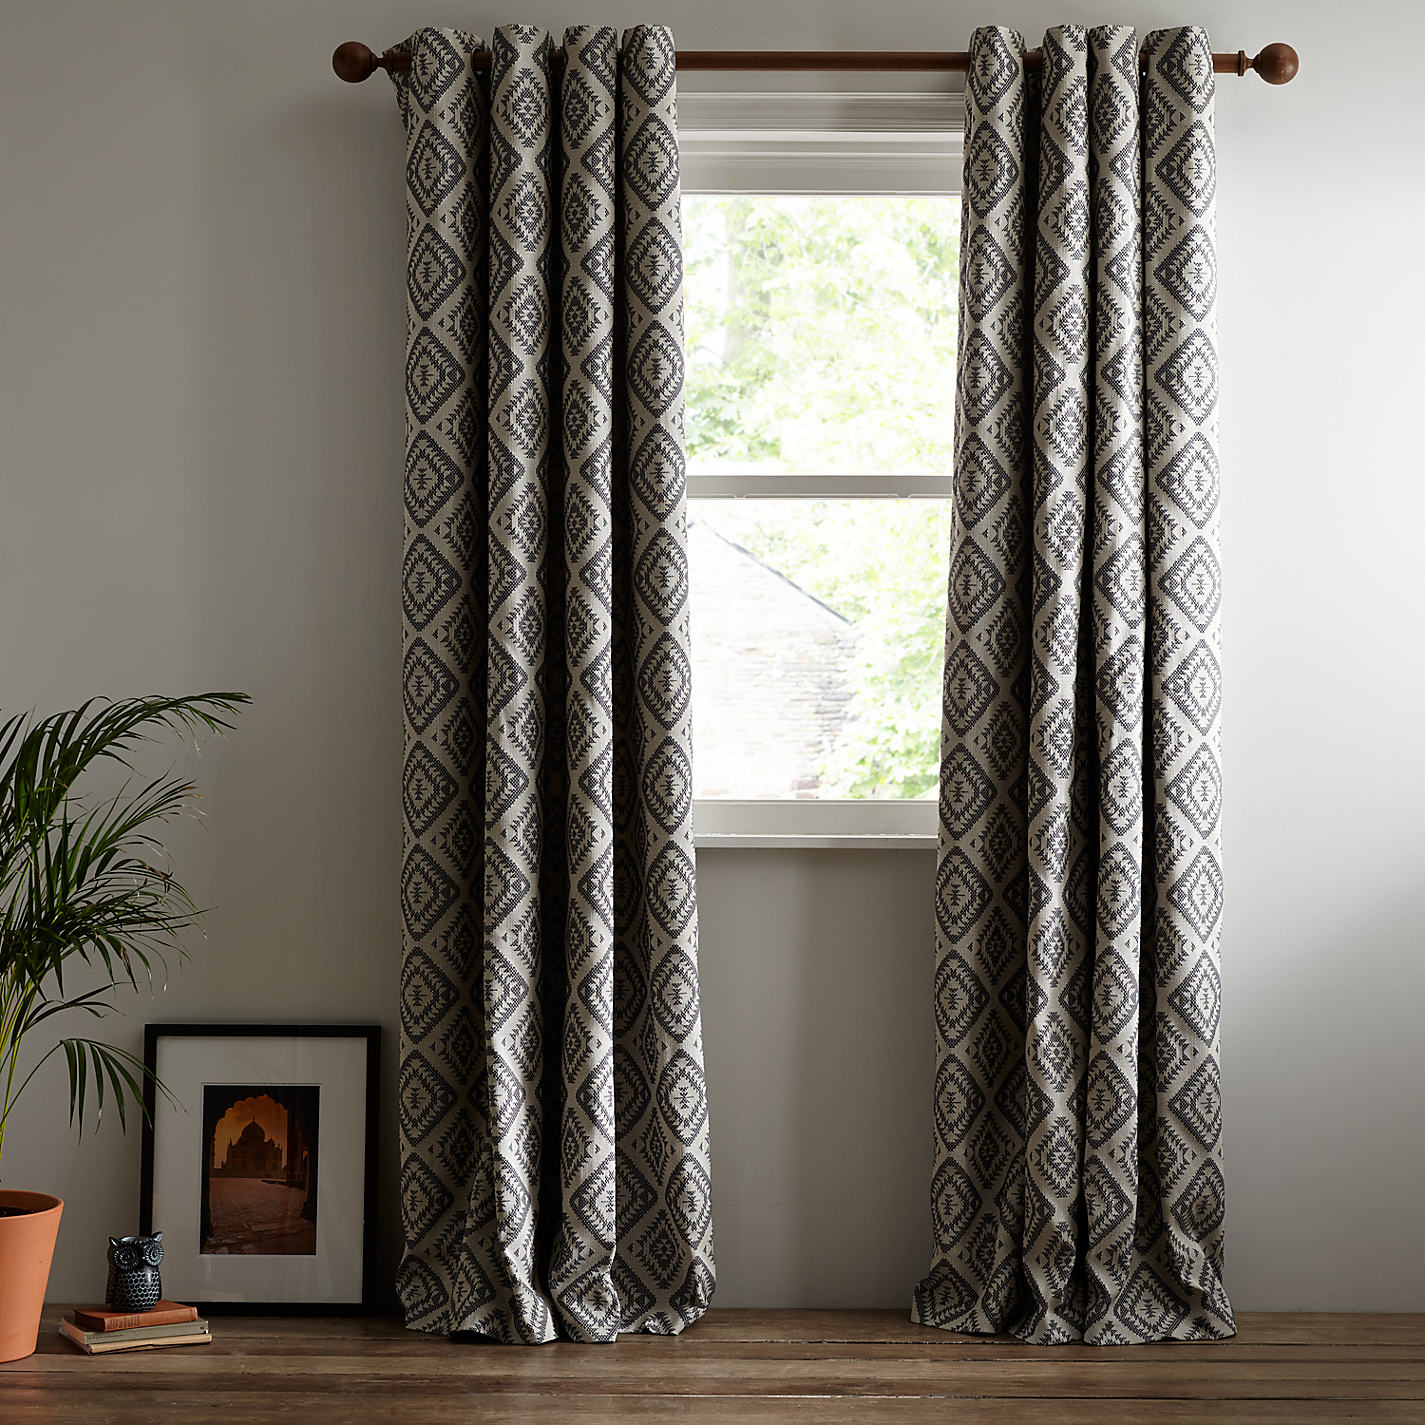 Buy John Lewis Native Weave Lined Eyelet Curtains Online At Johnlewis